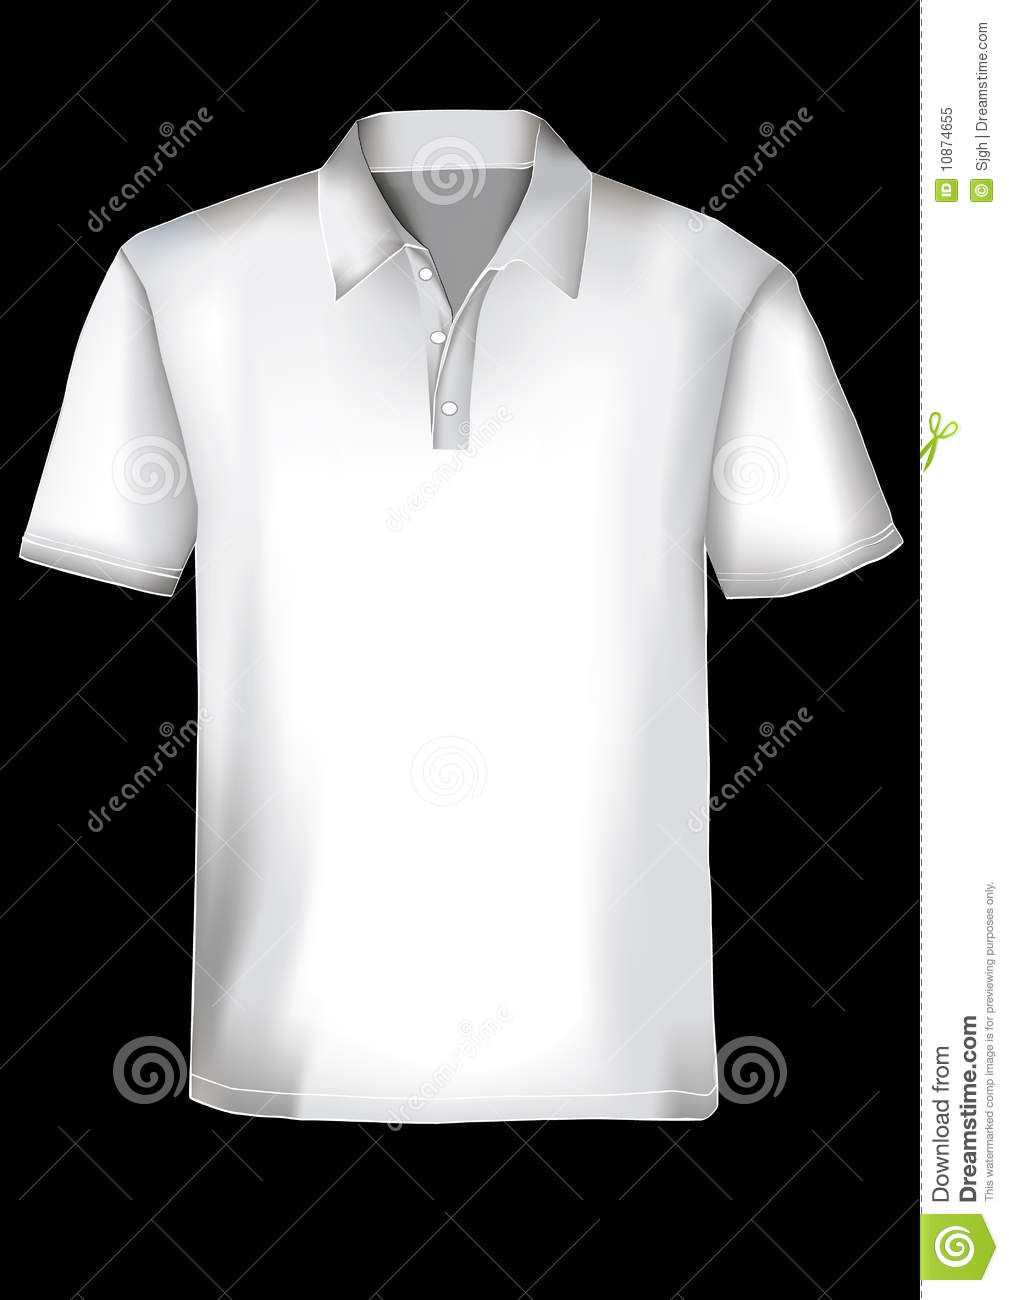 Polo shirt design template royalty free stock photo for Polo t shirt design online